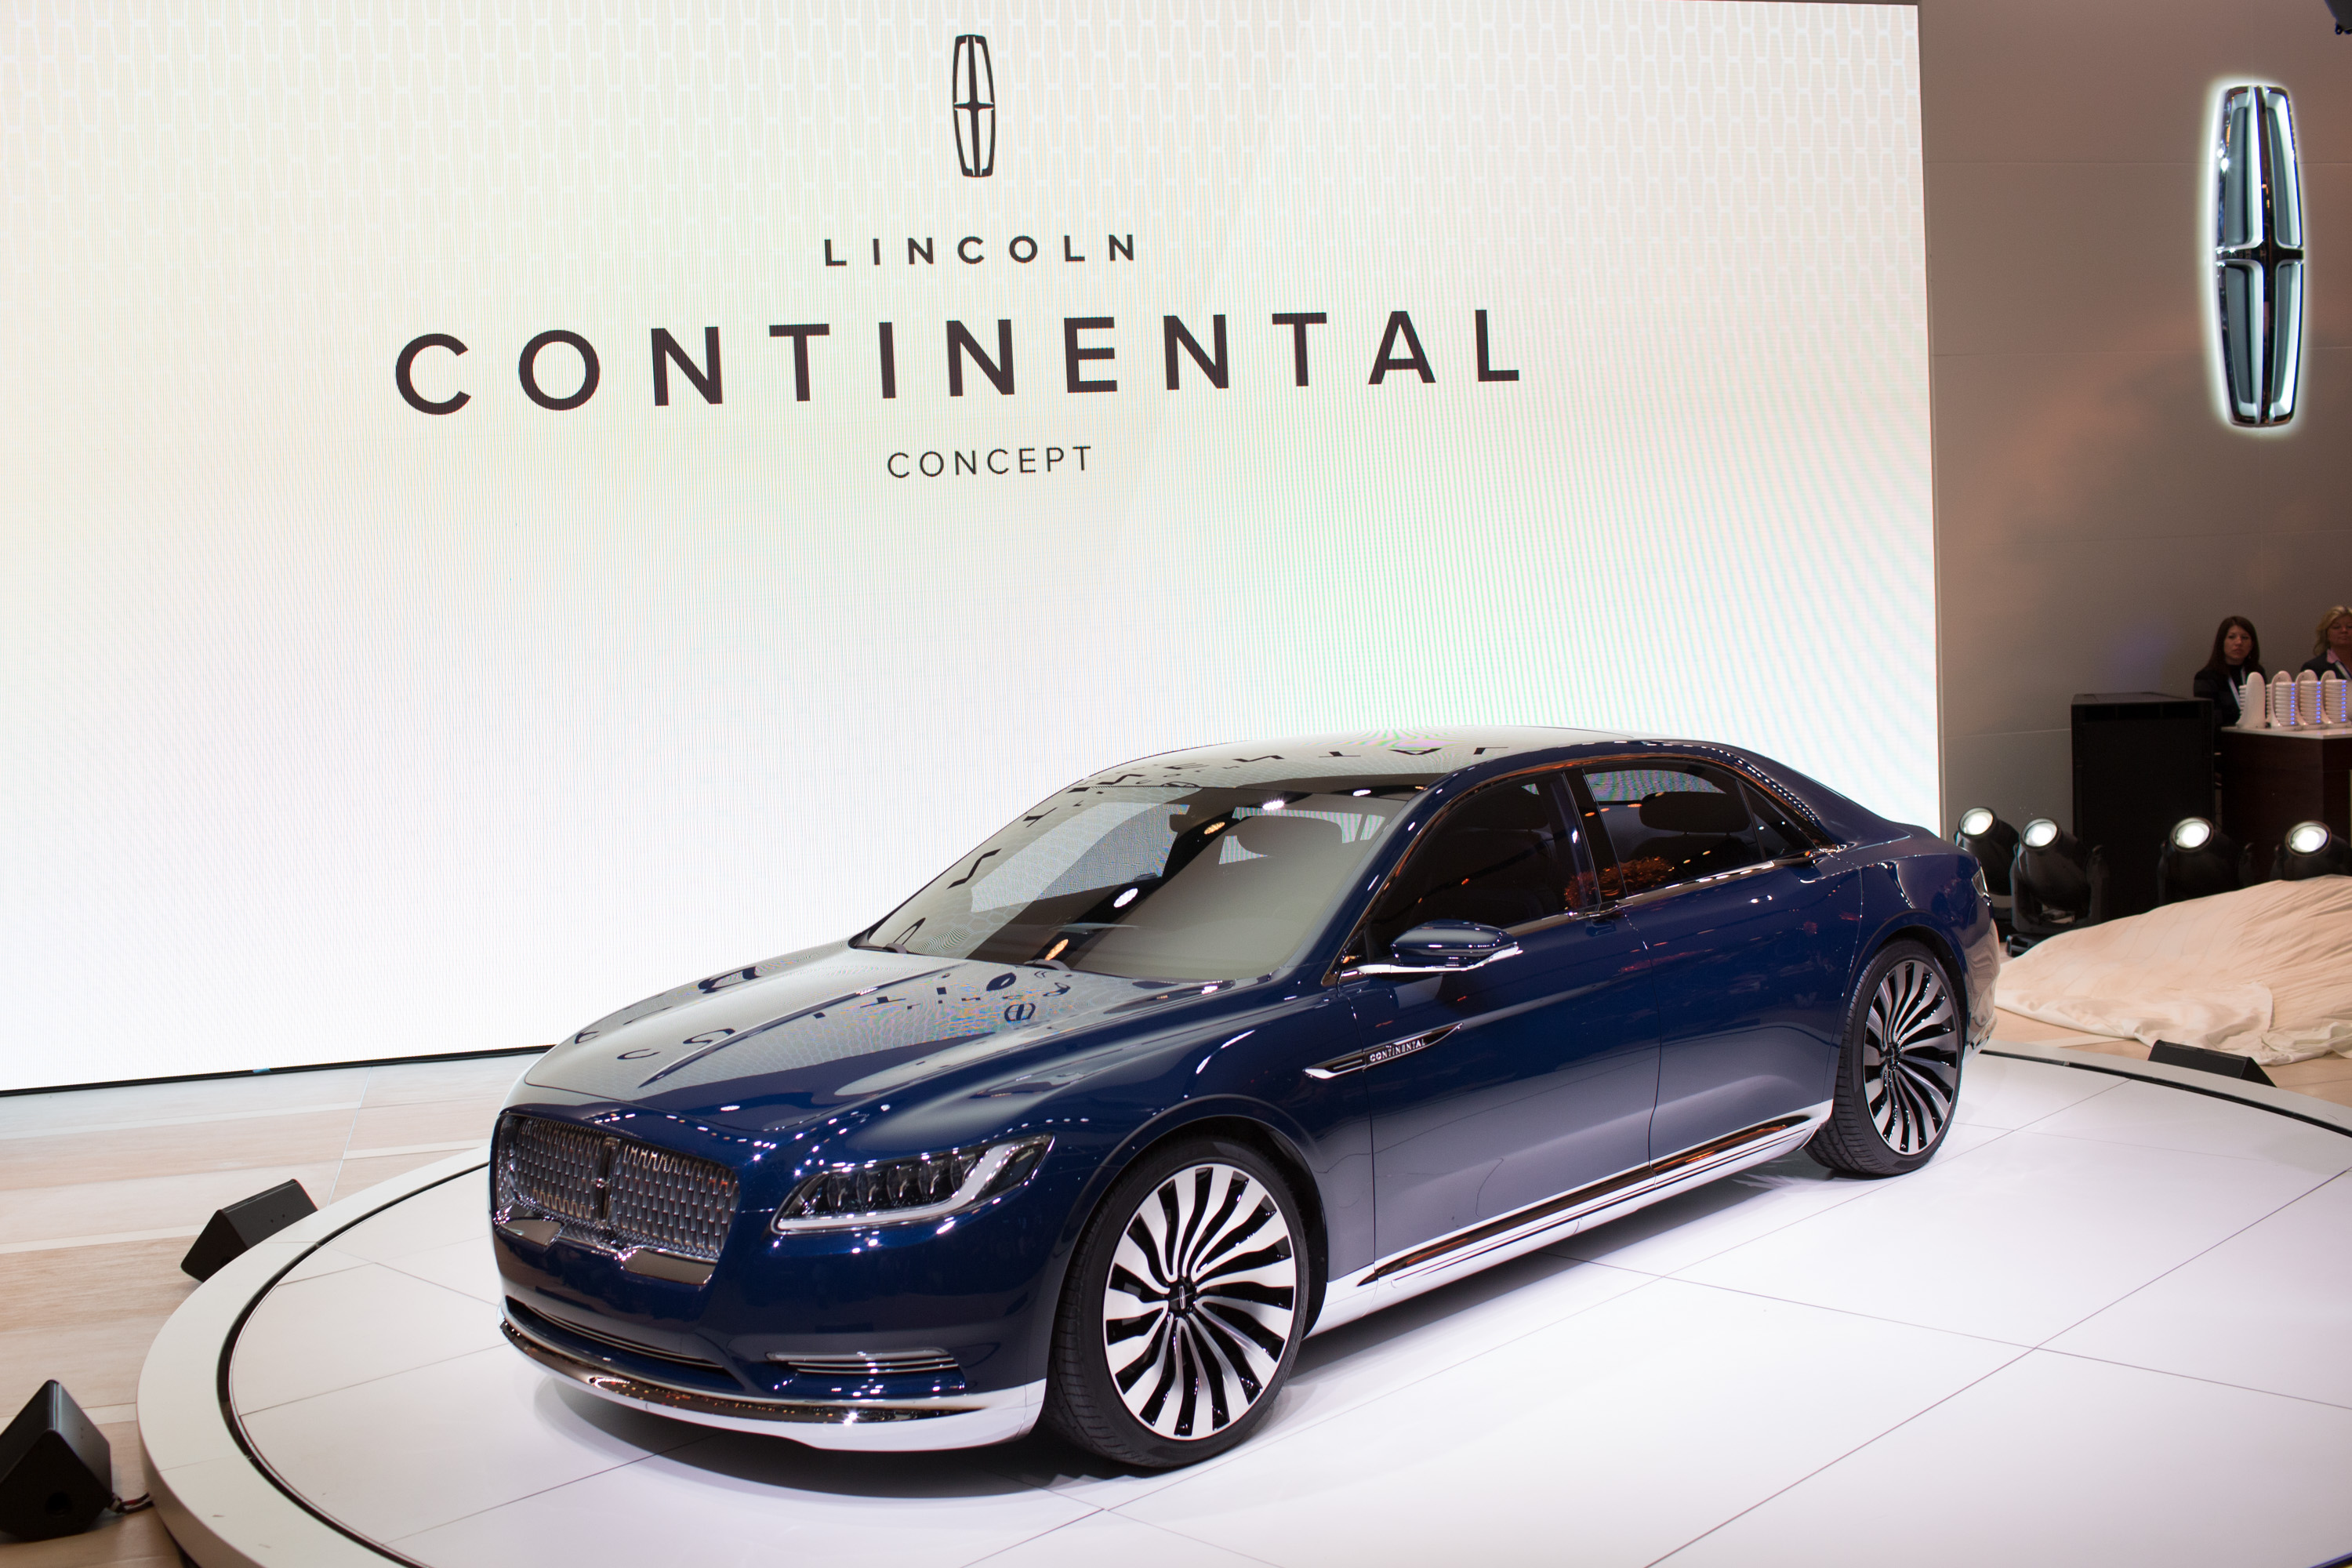 Ford renews focus on luxury brand Lincoln at New York International Auto Show - CBS News